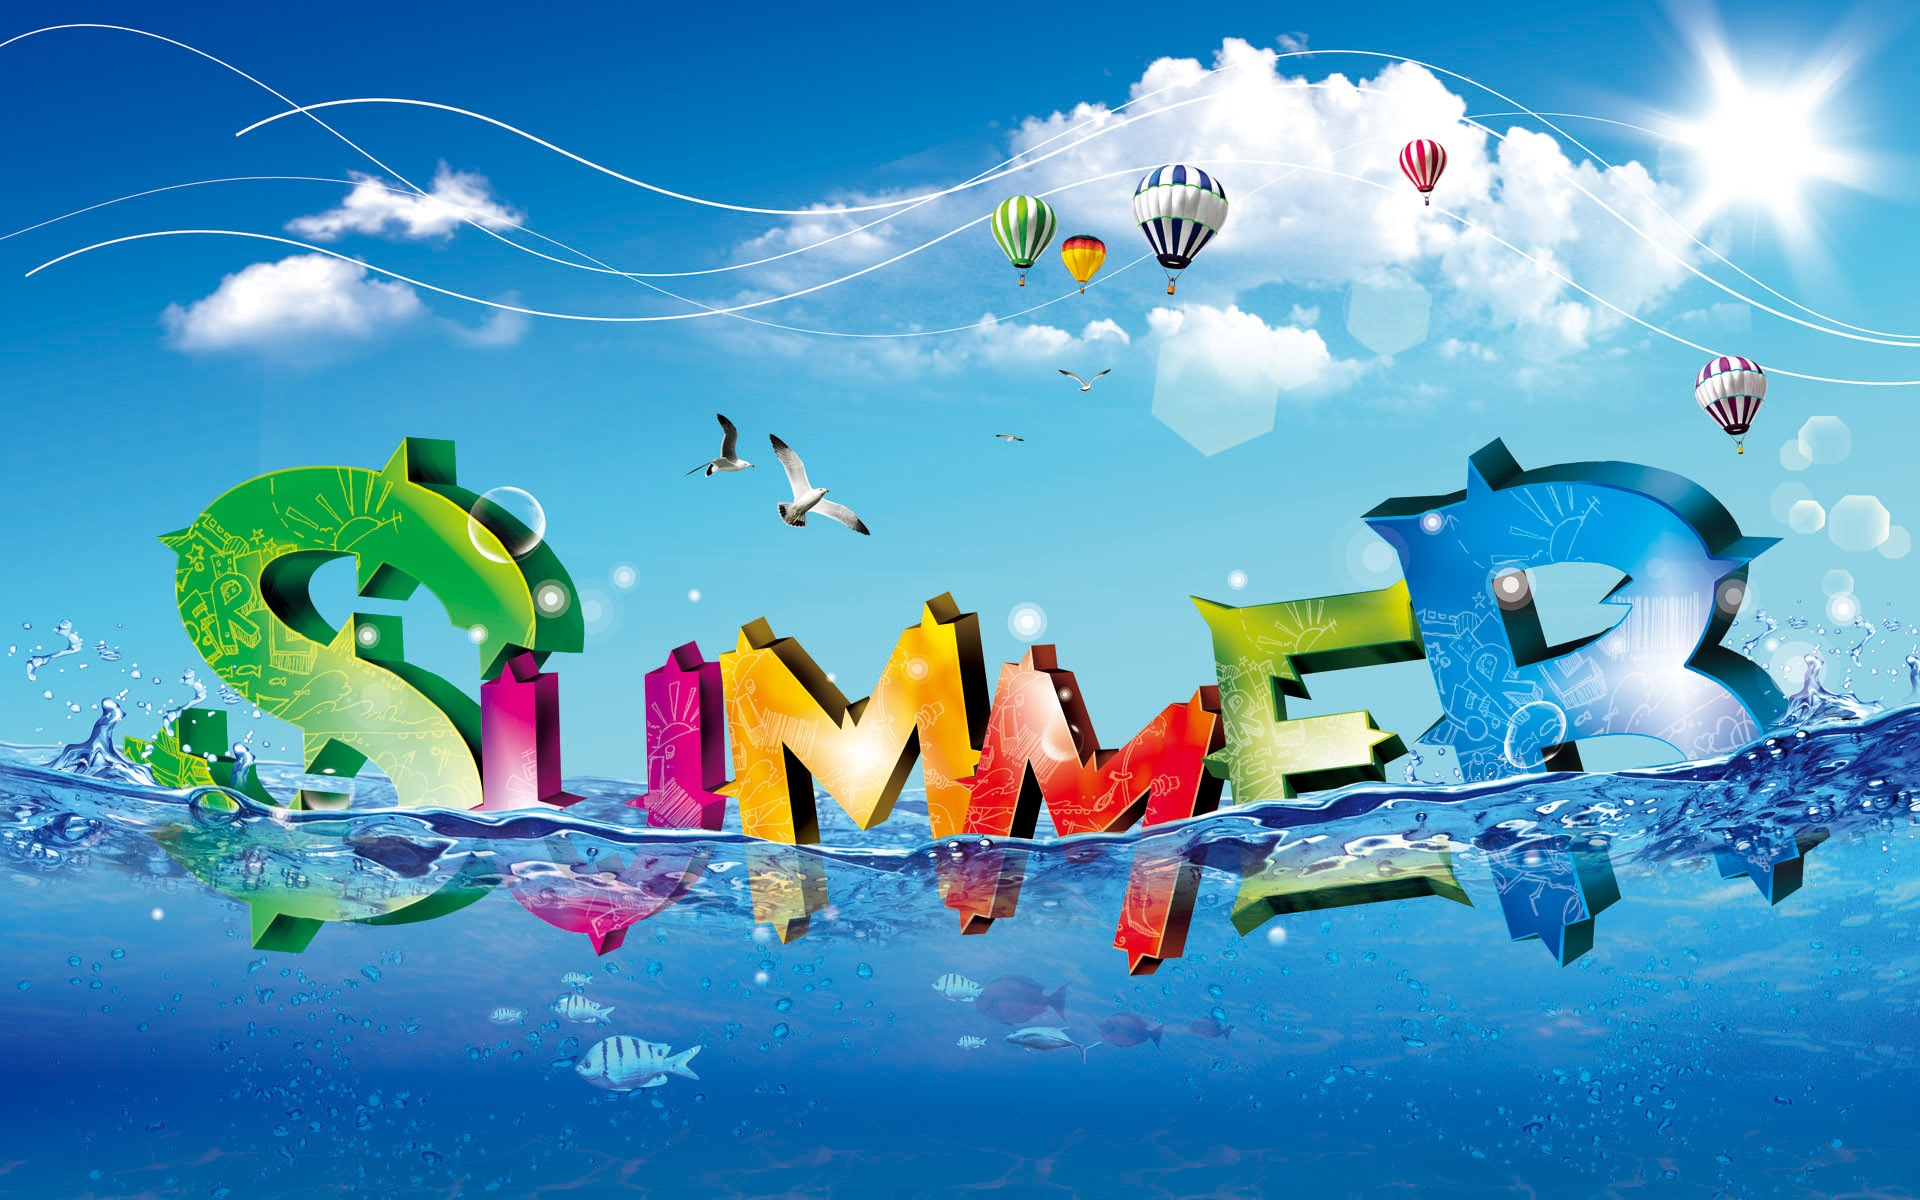 Colorful-fresh-summer-water-letter_1920x1200